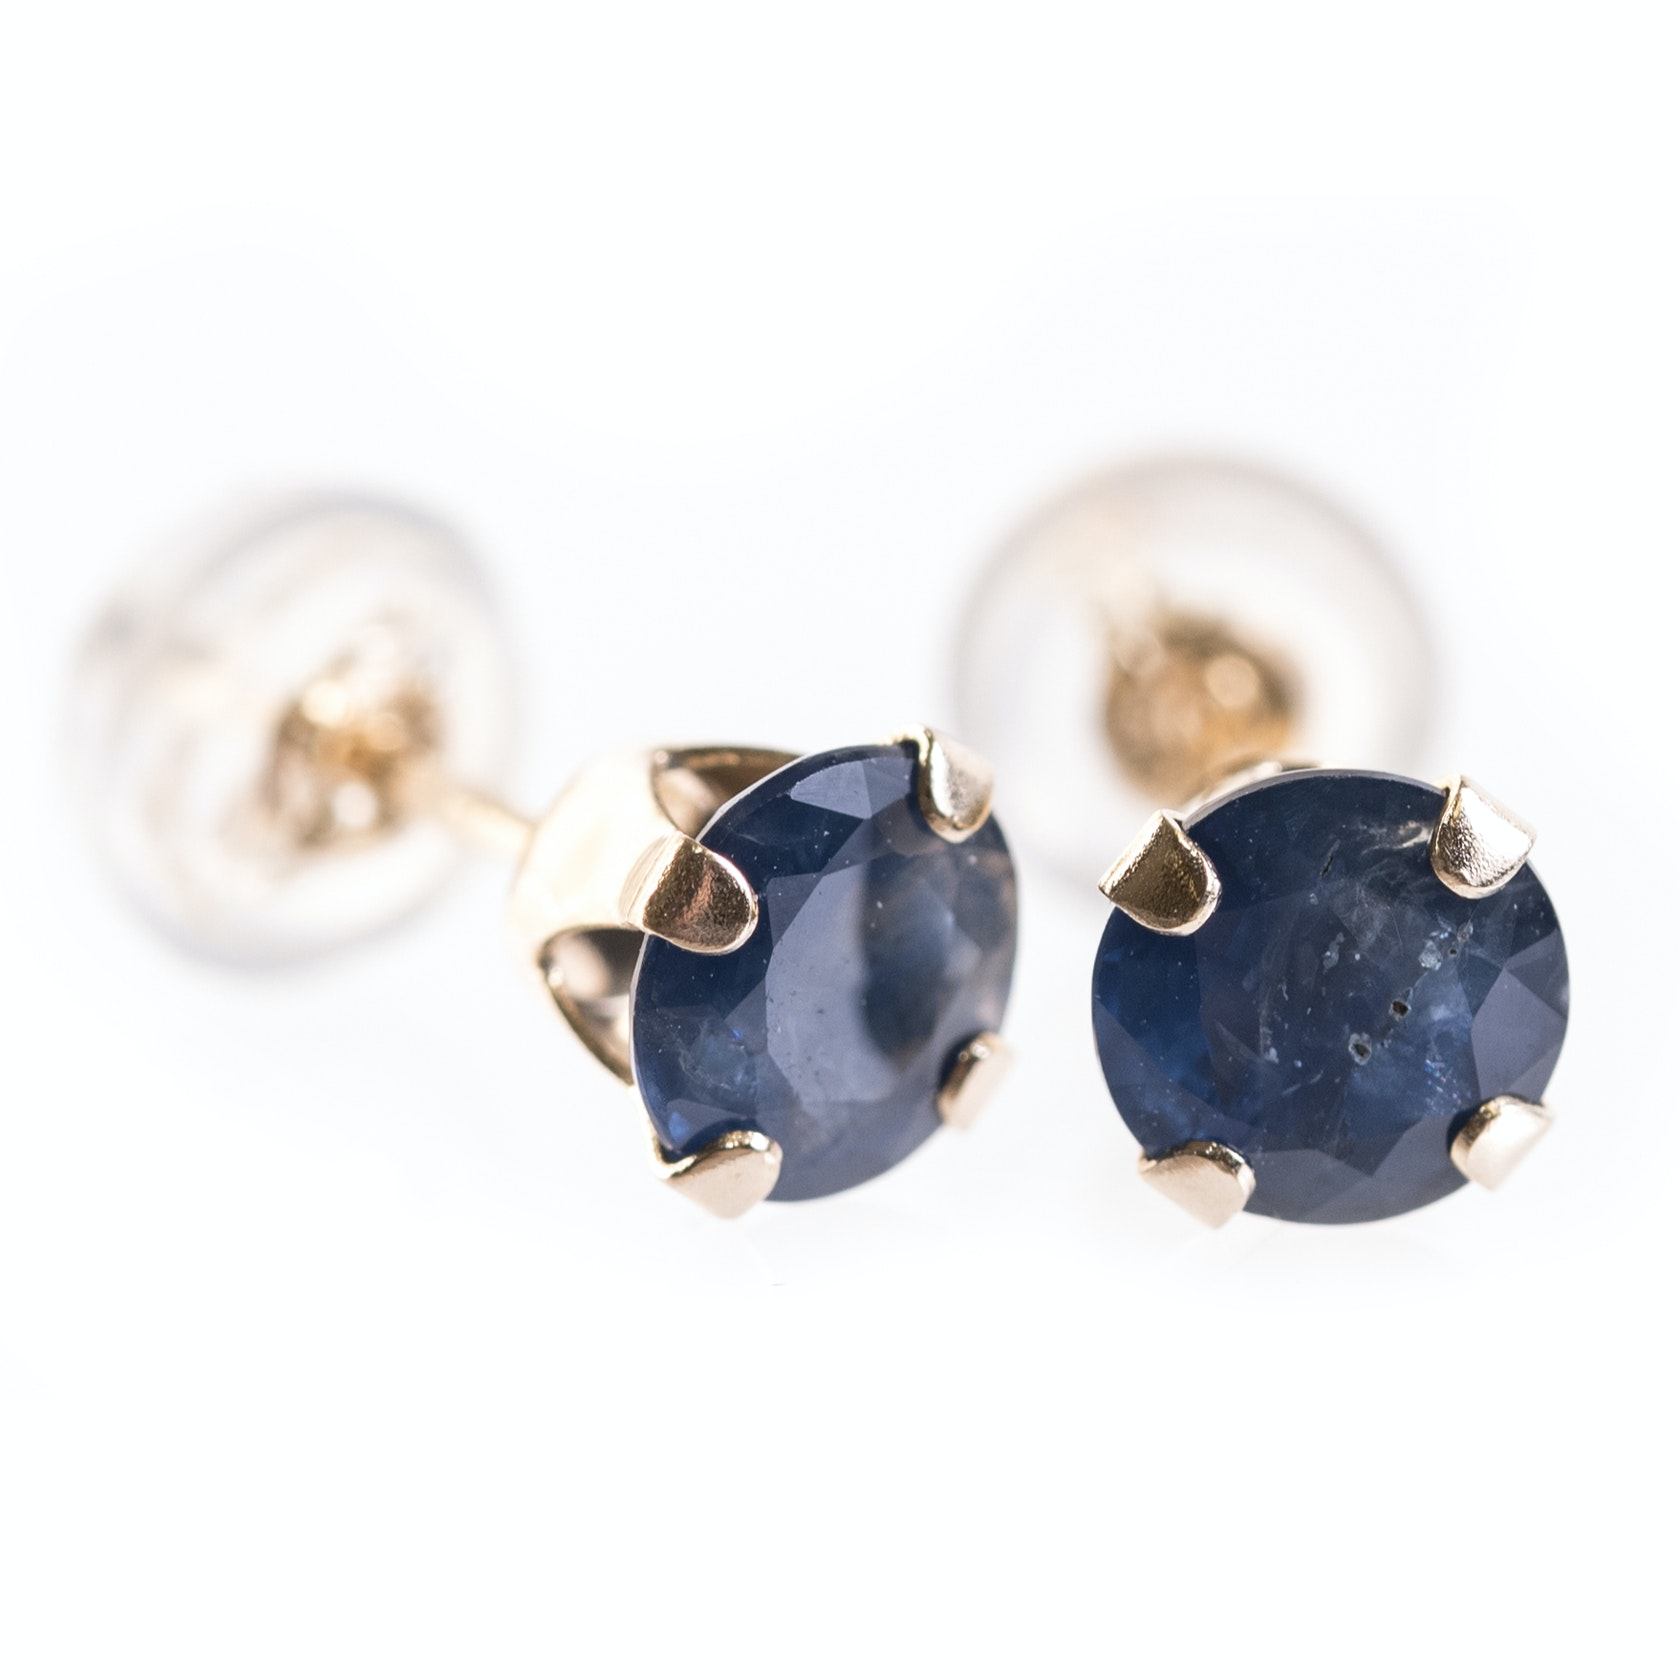 14K Yellow Gold and Sapphire Stud Earrings